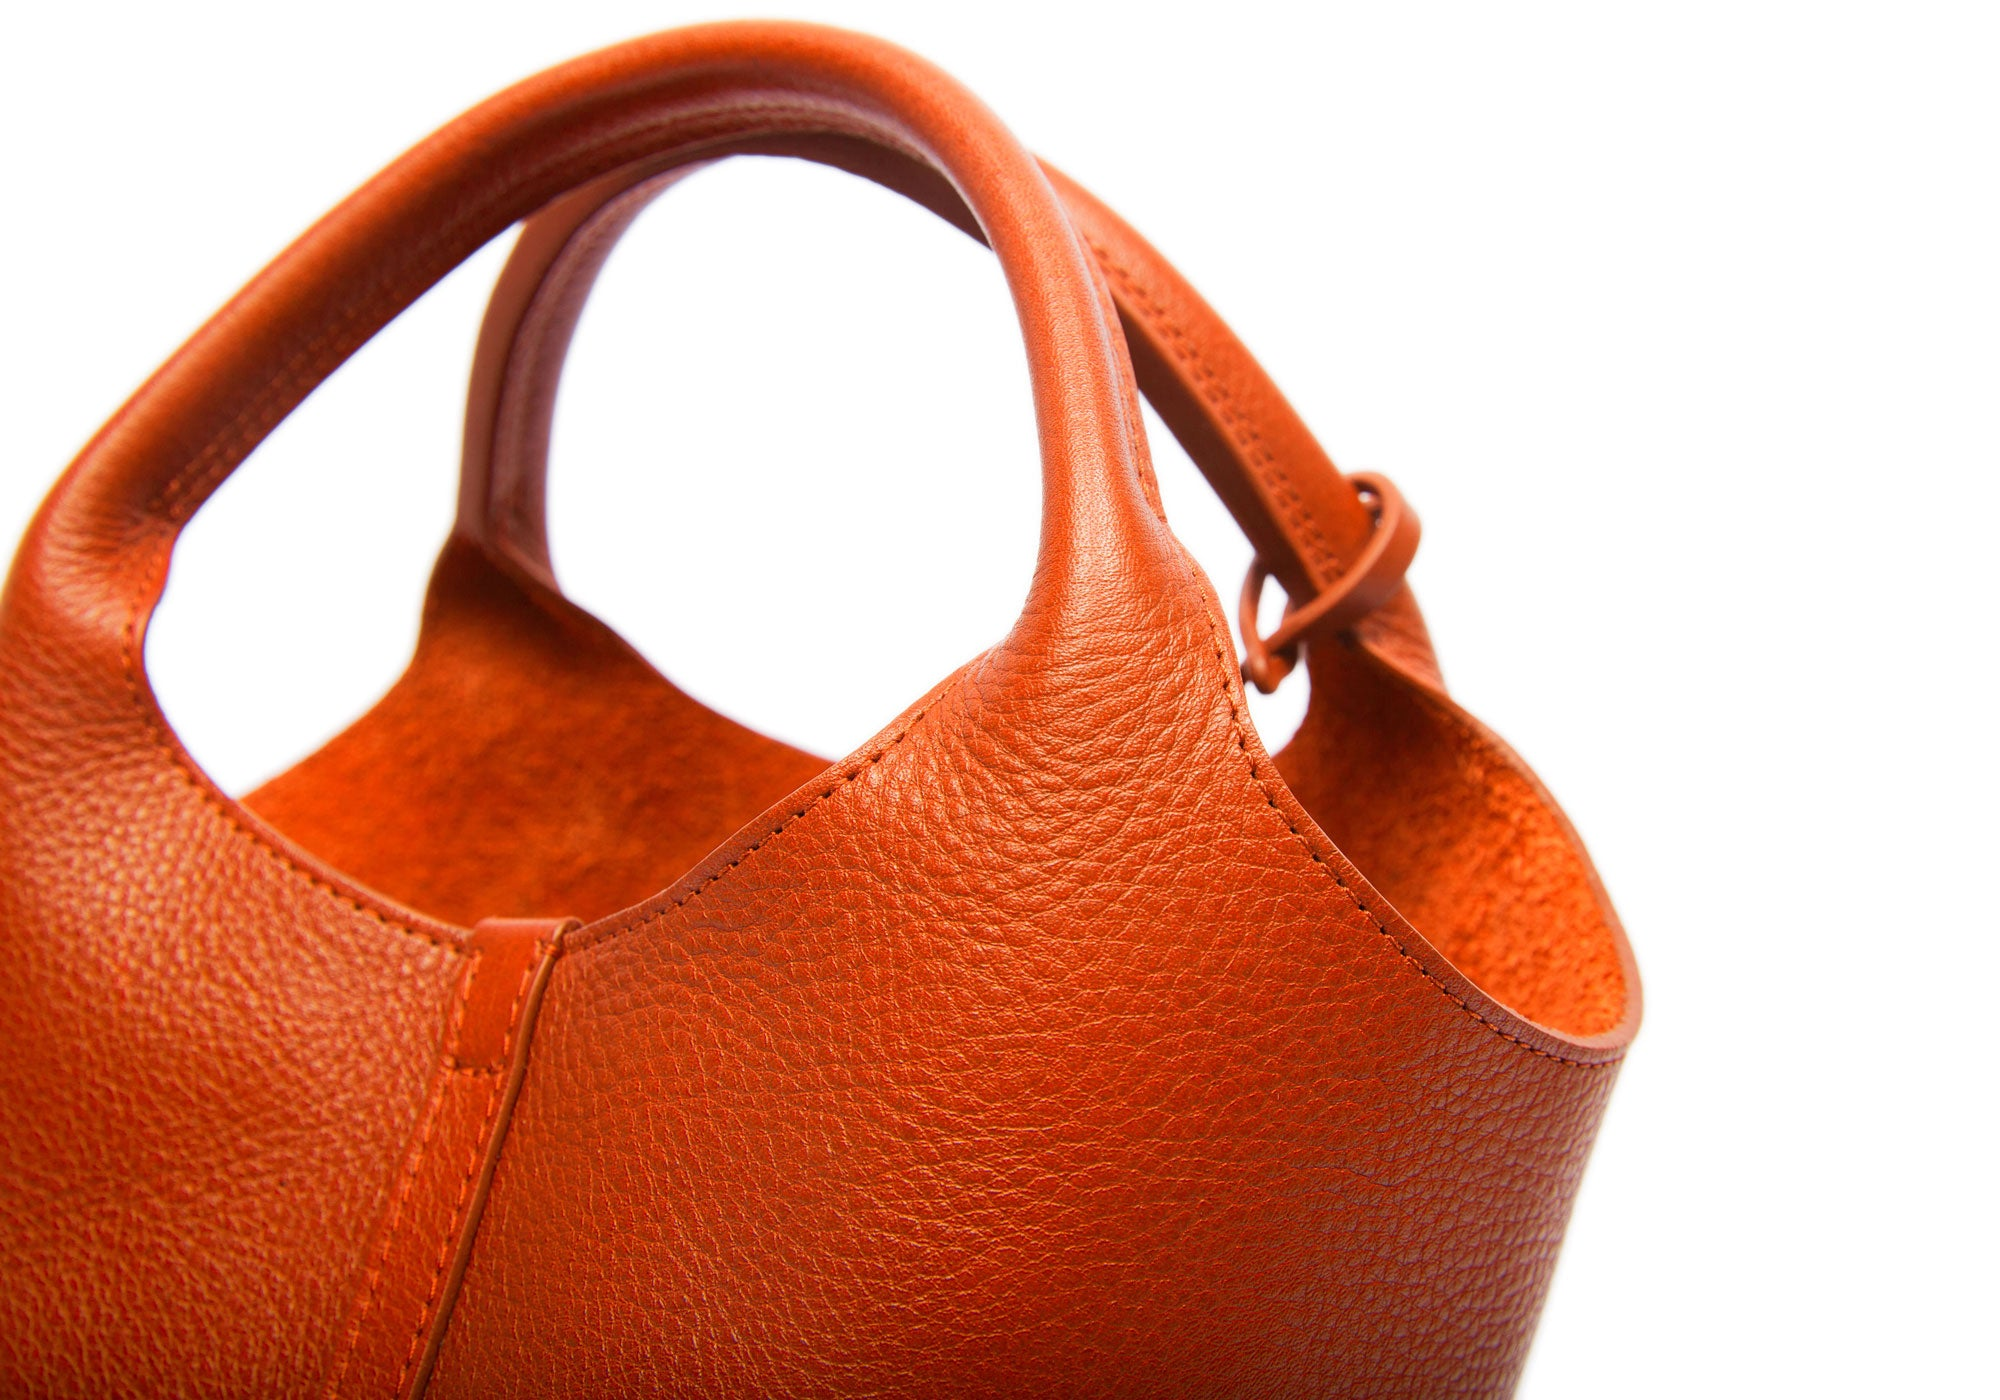 Top Leather Handle of The One-Piece Bag Orange